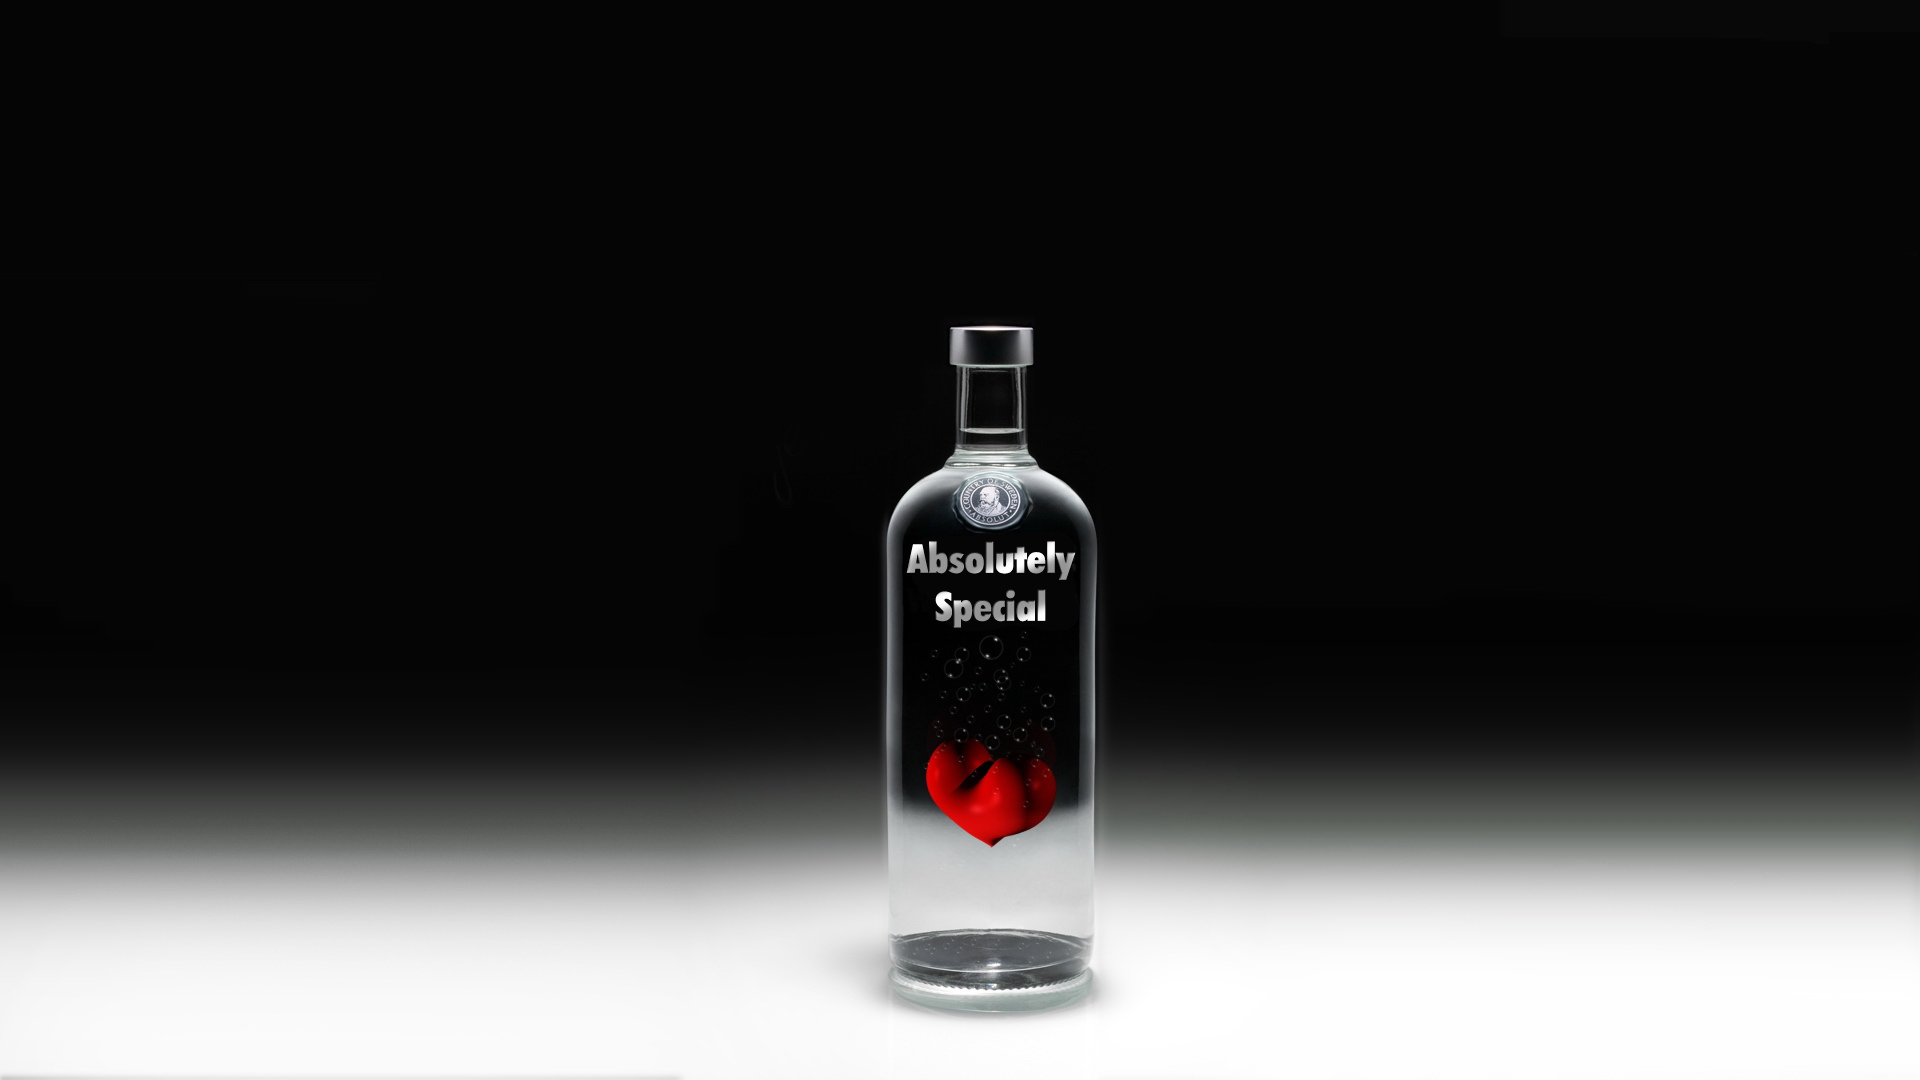 Unique Love Wallpaper Hd : Absolut-Bottle-Unique-Wallpaper-HD-Free-Desktop-Mobile-001 - wallpaper.wiki